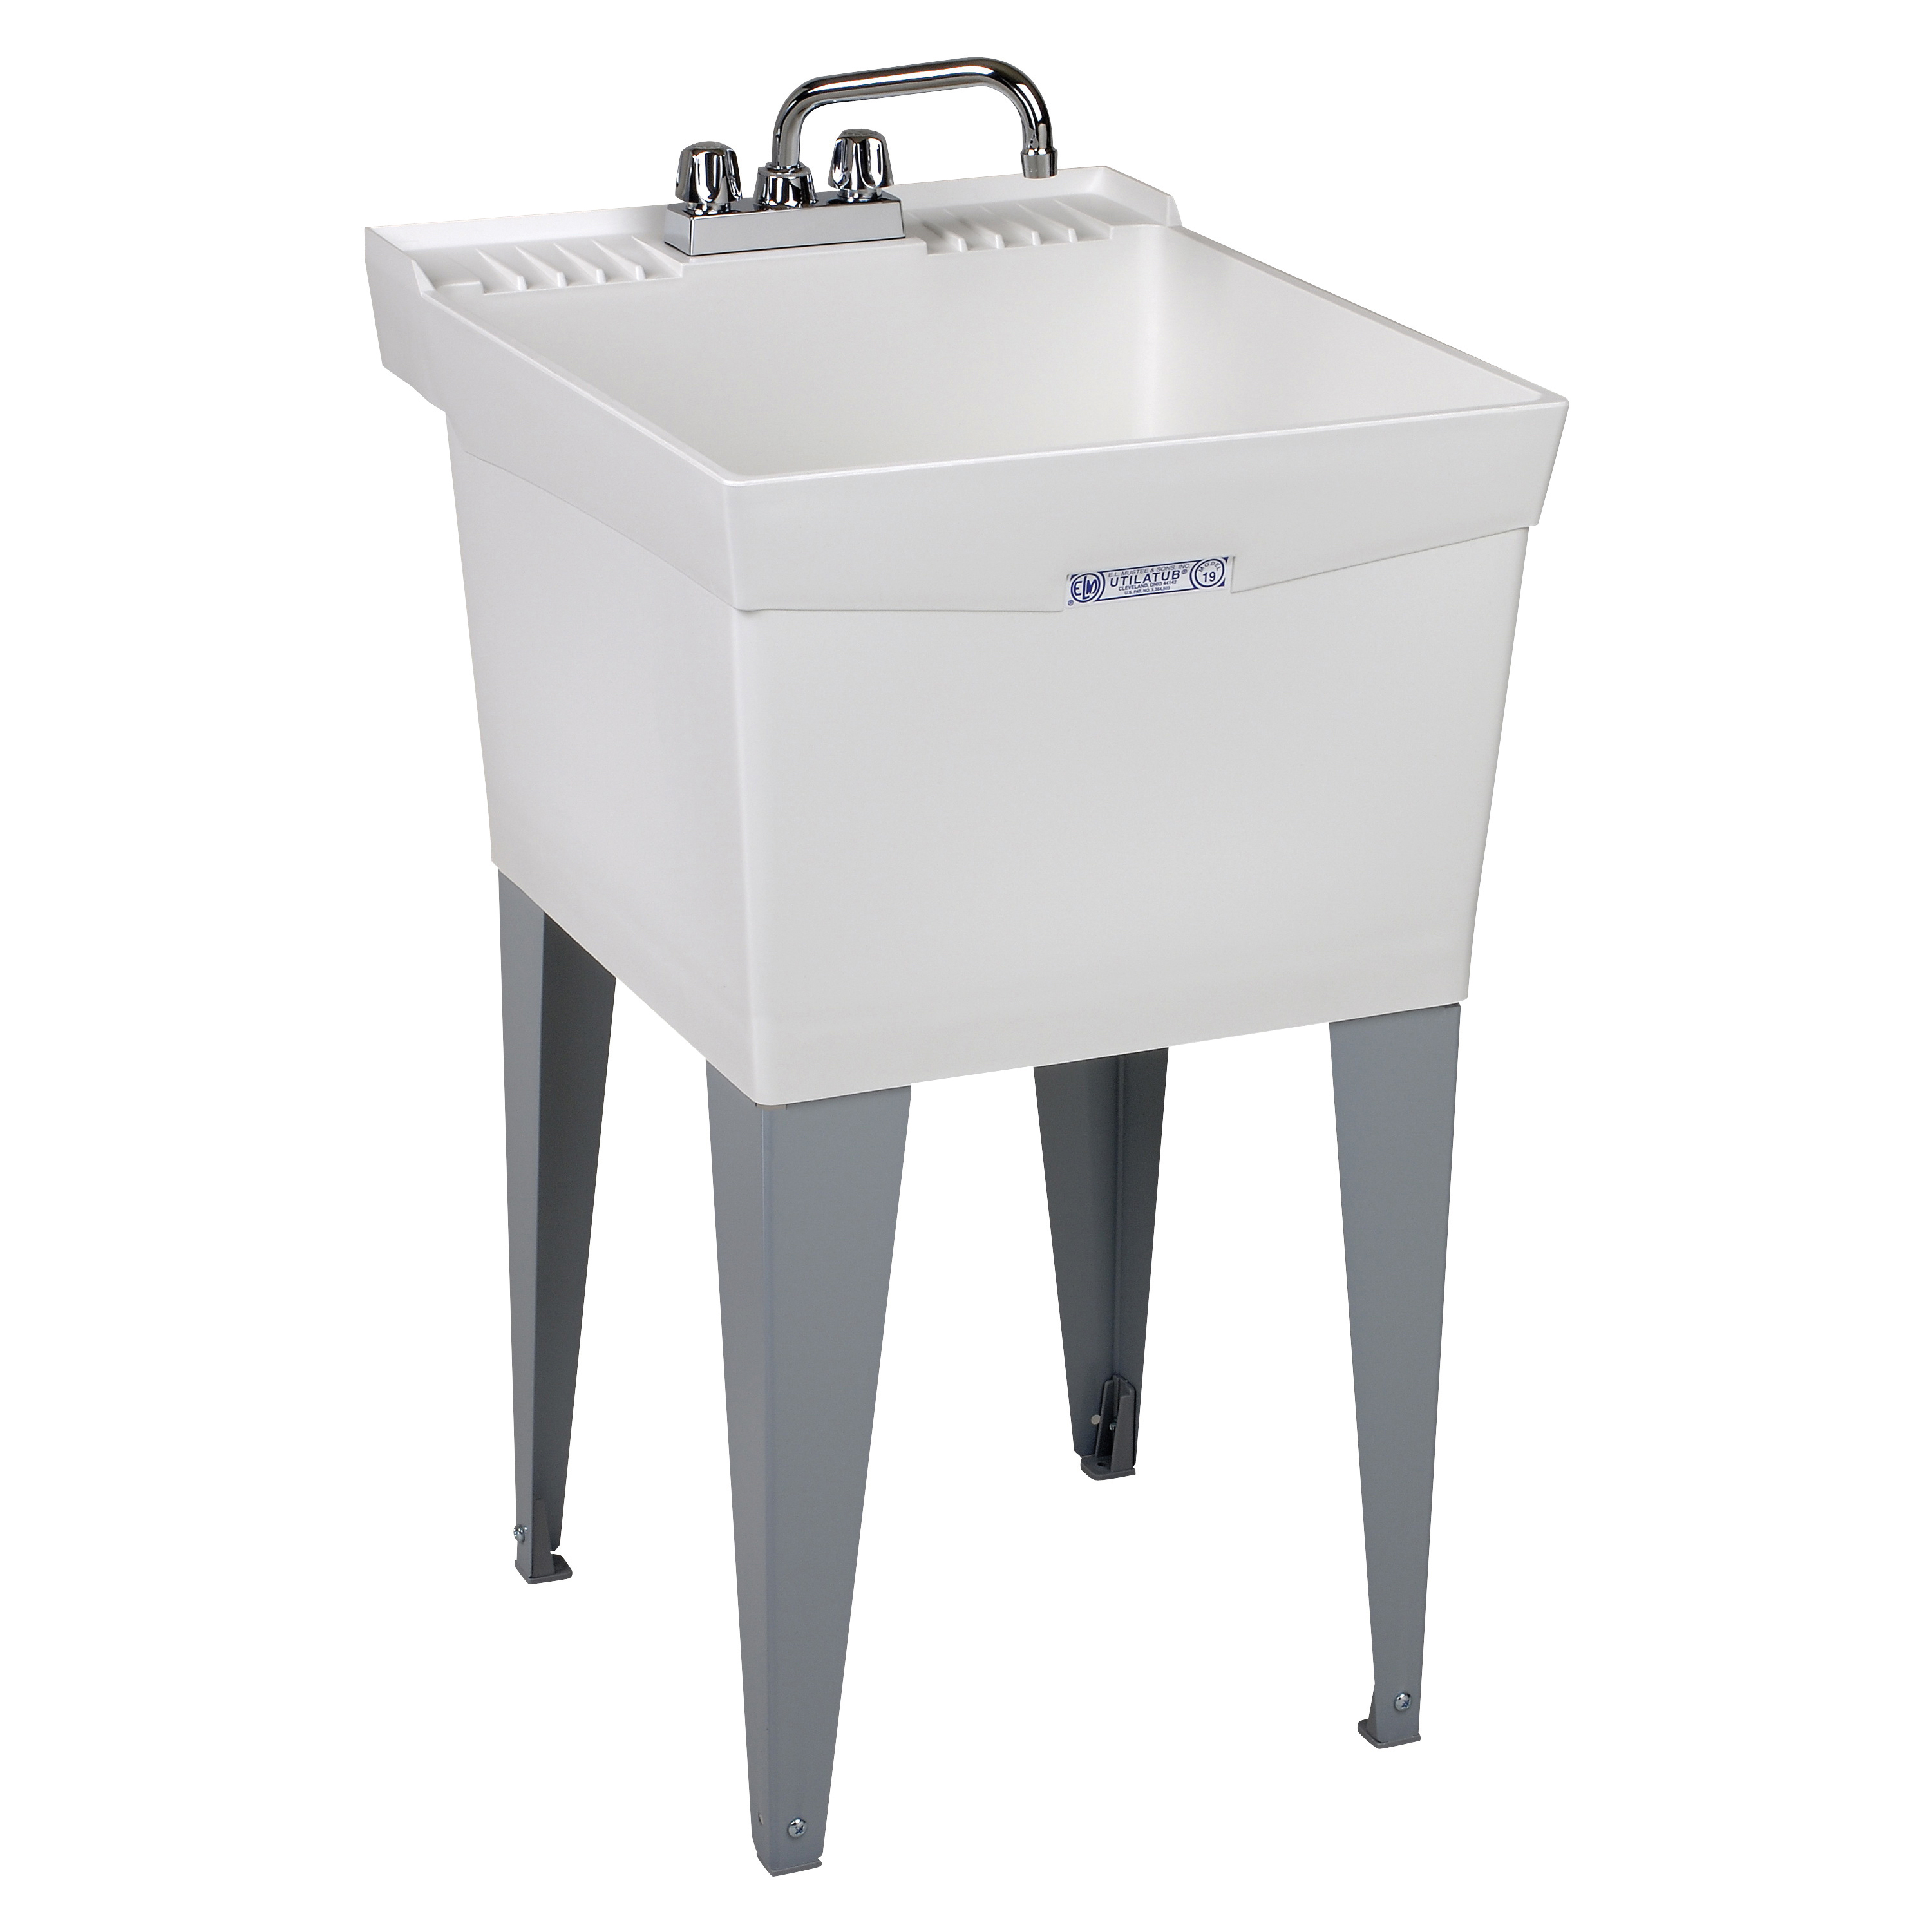 Picture of ELM UTILATUB 19CF Laundry Tub Combo Kit, 18 gal Capacity, 2-Deck Hole, 24 in OAW, 24 in OAD, 20 in OAH, White